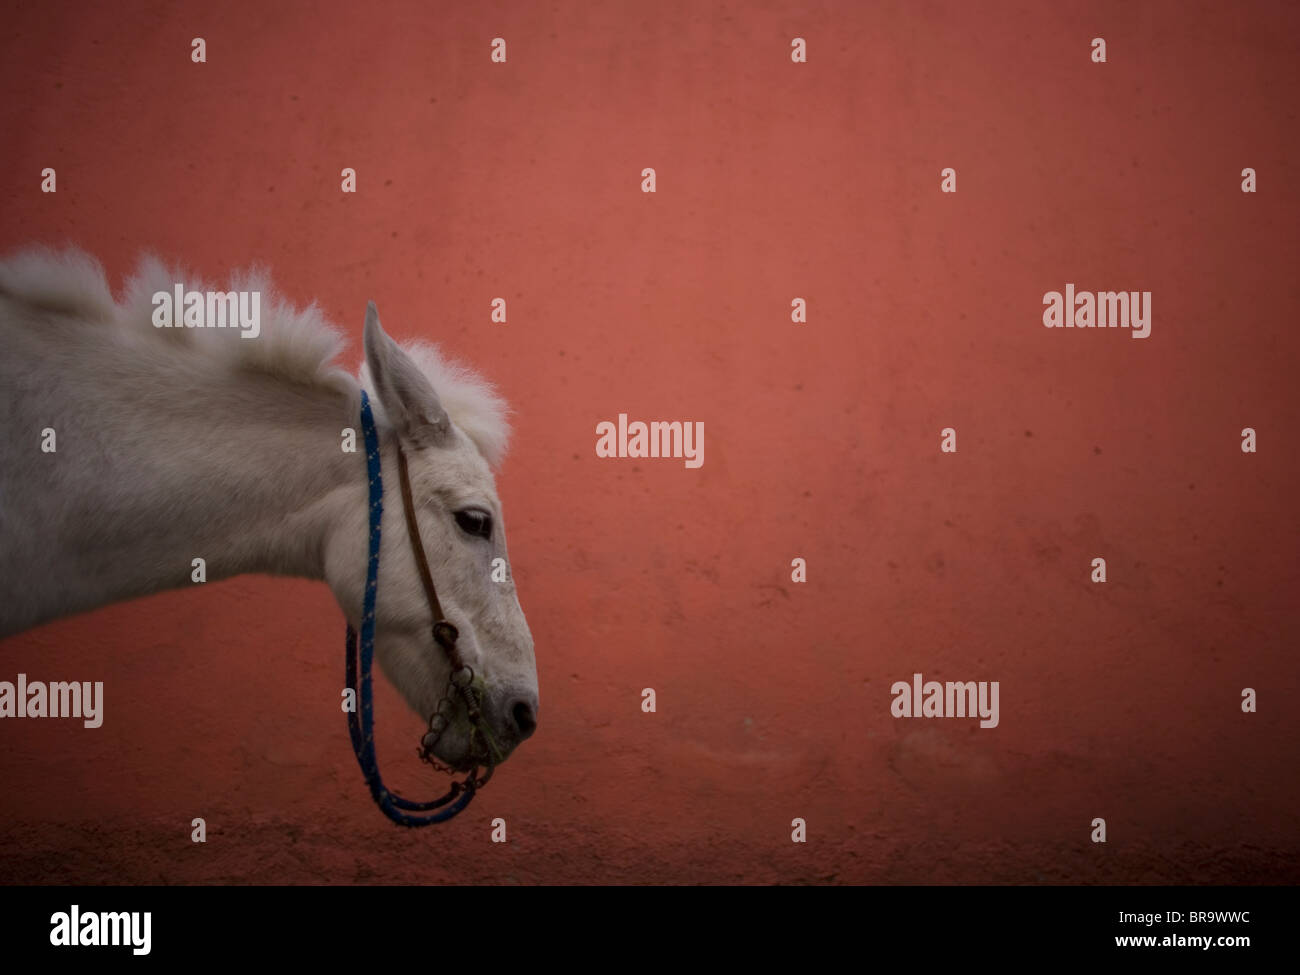 A donkey in front a salmon wall at the Annual Donkey Festival in Otumba Village Mexico - Stock Image